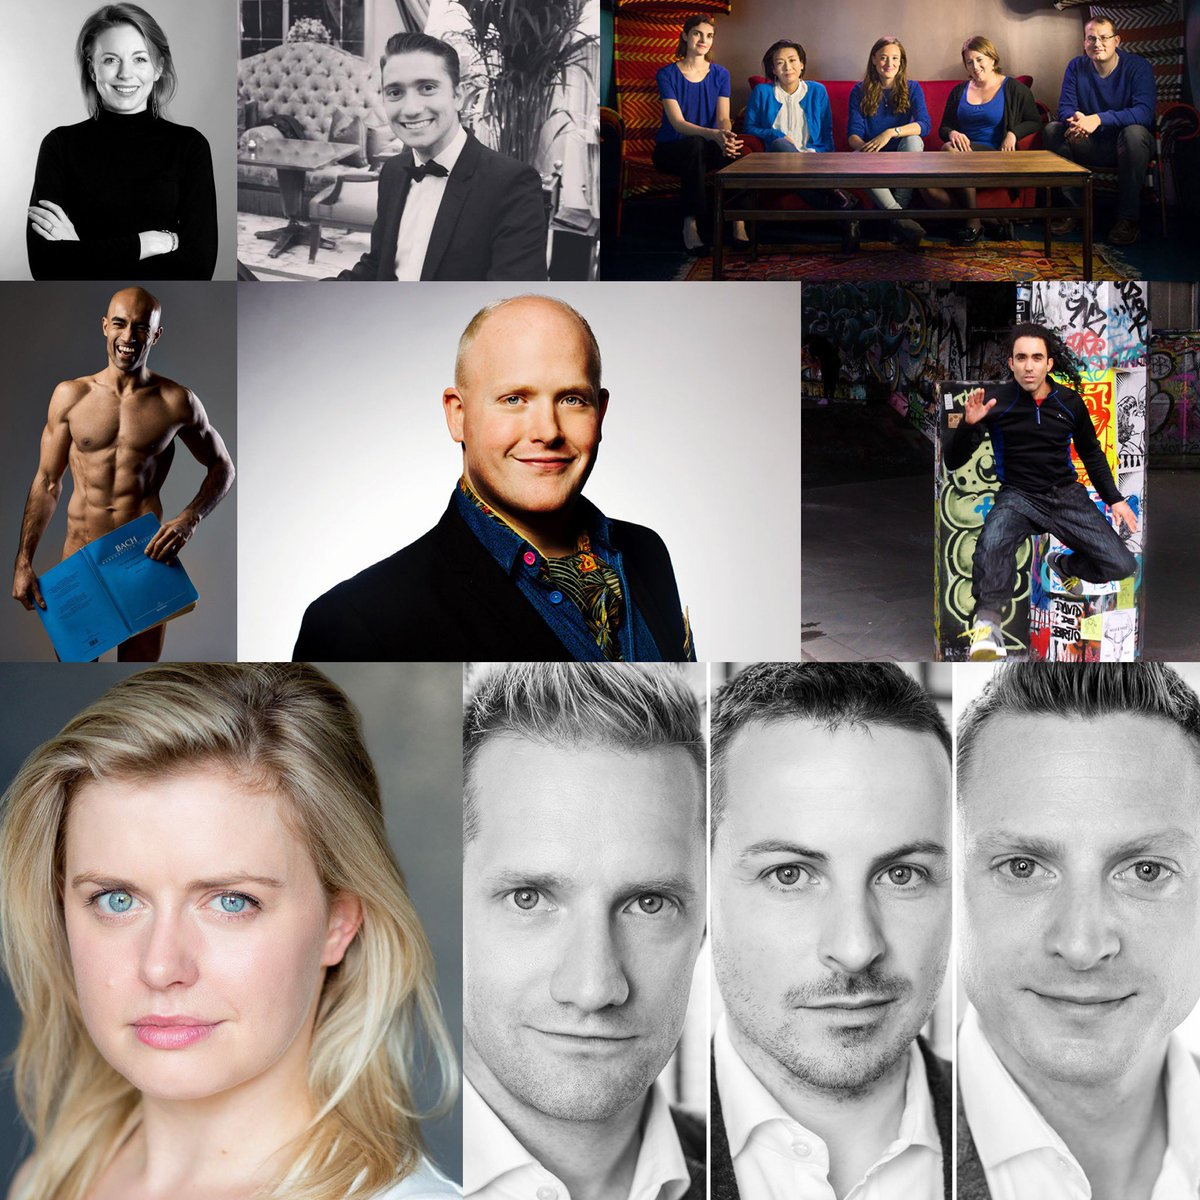 RT @SurbitonSalons Tickets still available for #SurbitonSummerSalons2019, 24-28th July, @cornerHOUSEarts.   Featuring all these incredible performers & more, our festival of music & arts is five glorious days of concerts, workshops & talks.  https://t.co/xlY498cO10